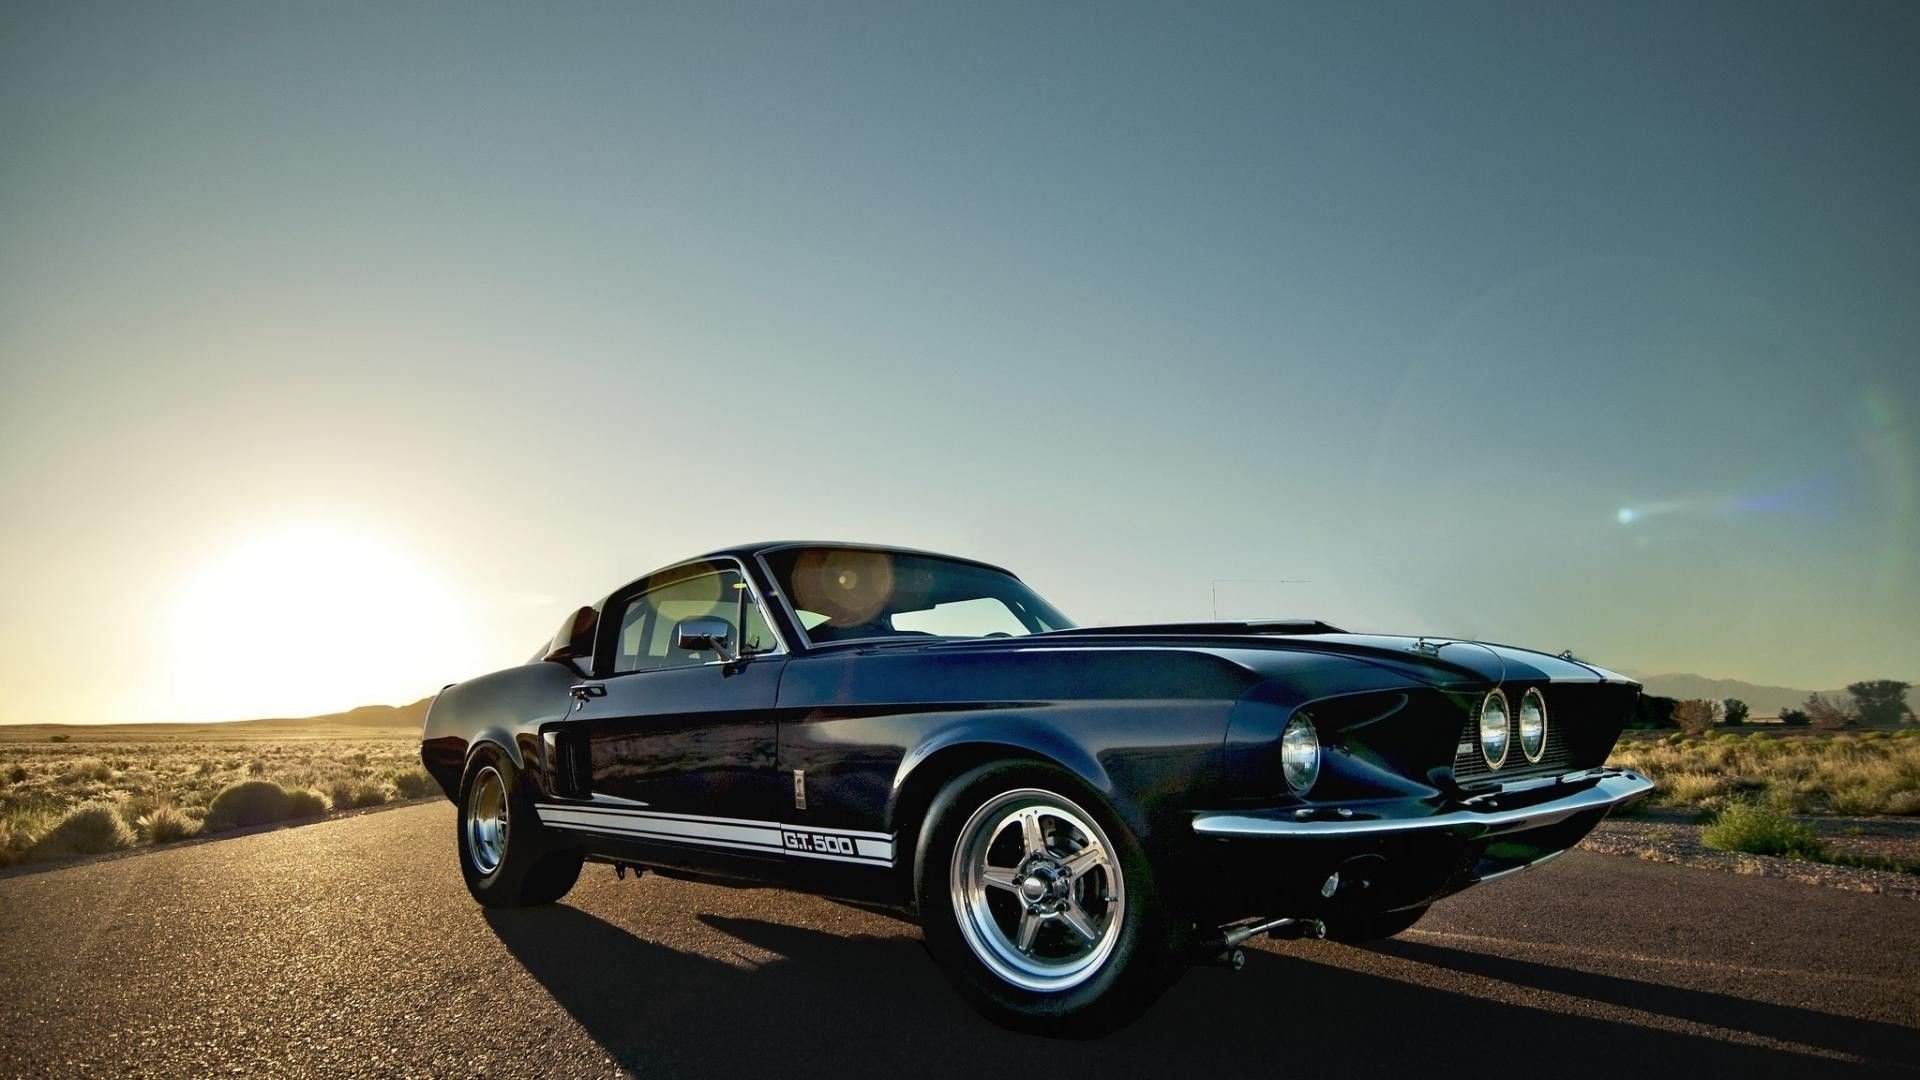 Muscle Car Hd Wallpaper >> 30 HD Mustang Wallpapers For Free Download